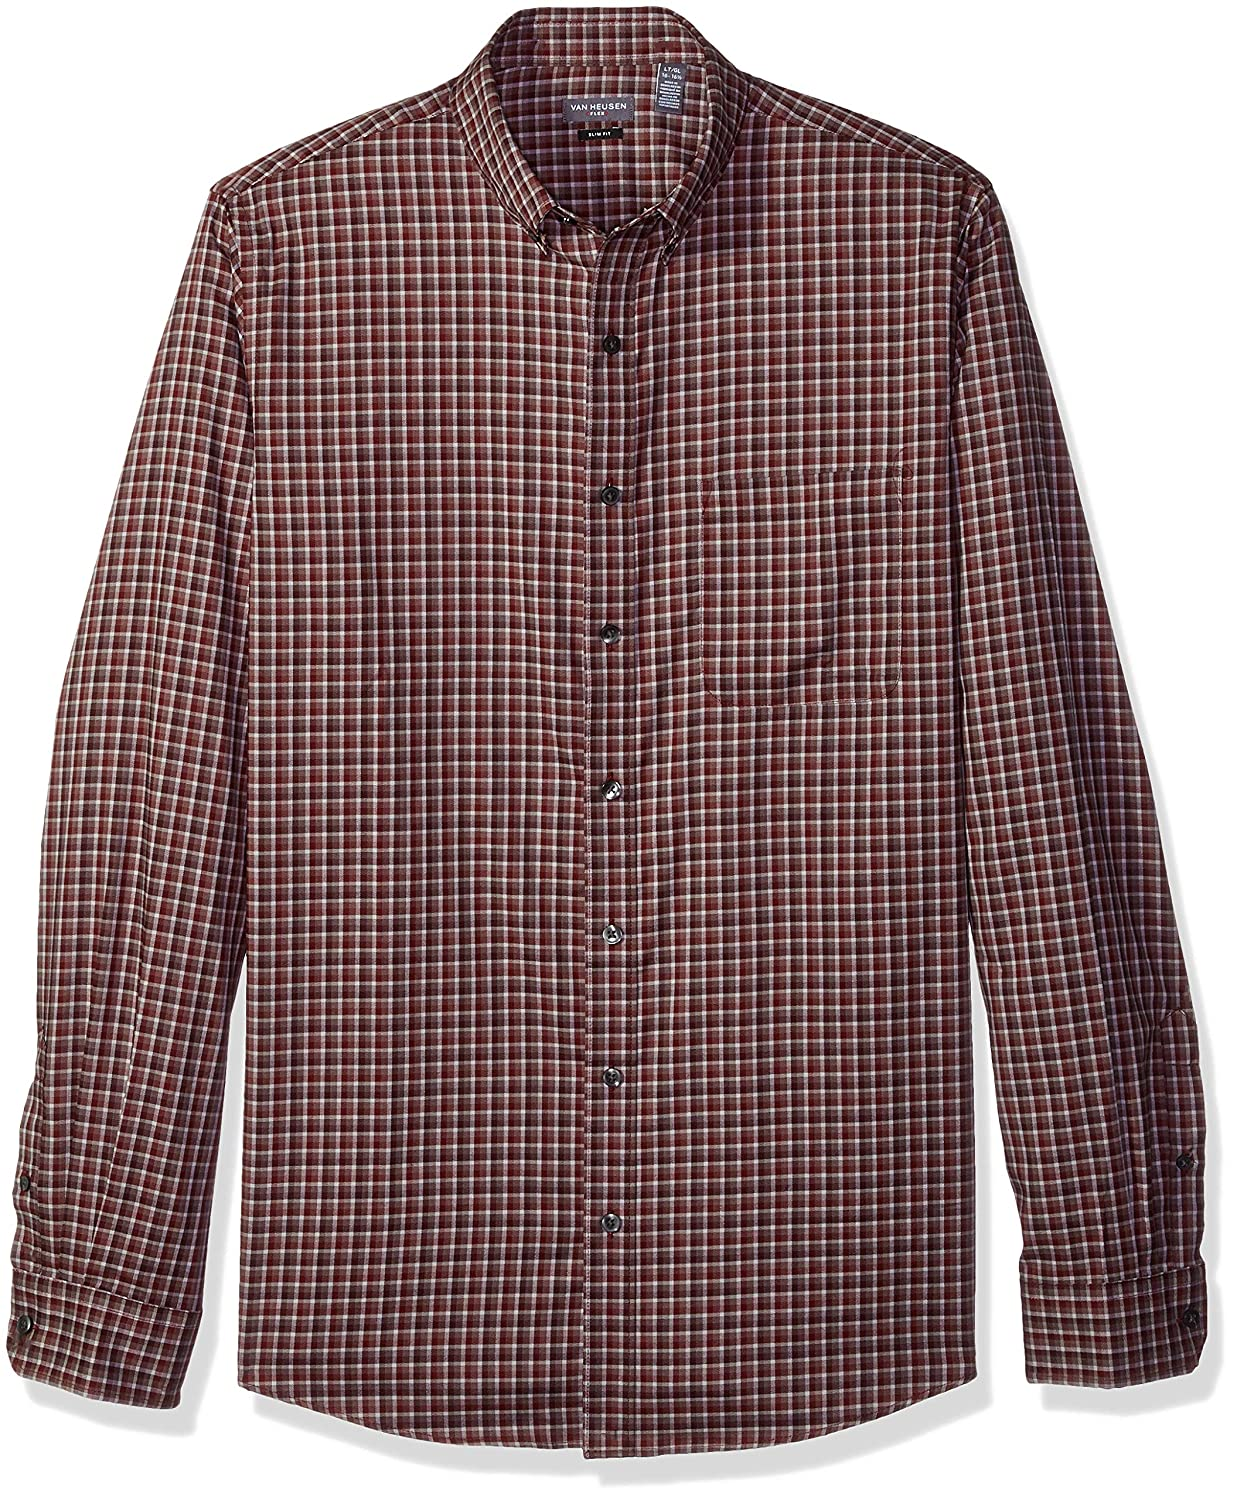 Van Heusen Mens Big and Tall Slim Fit Flex Long Sleeve Button Down Stretch Check Shirt